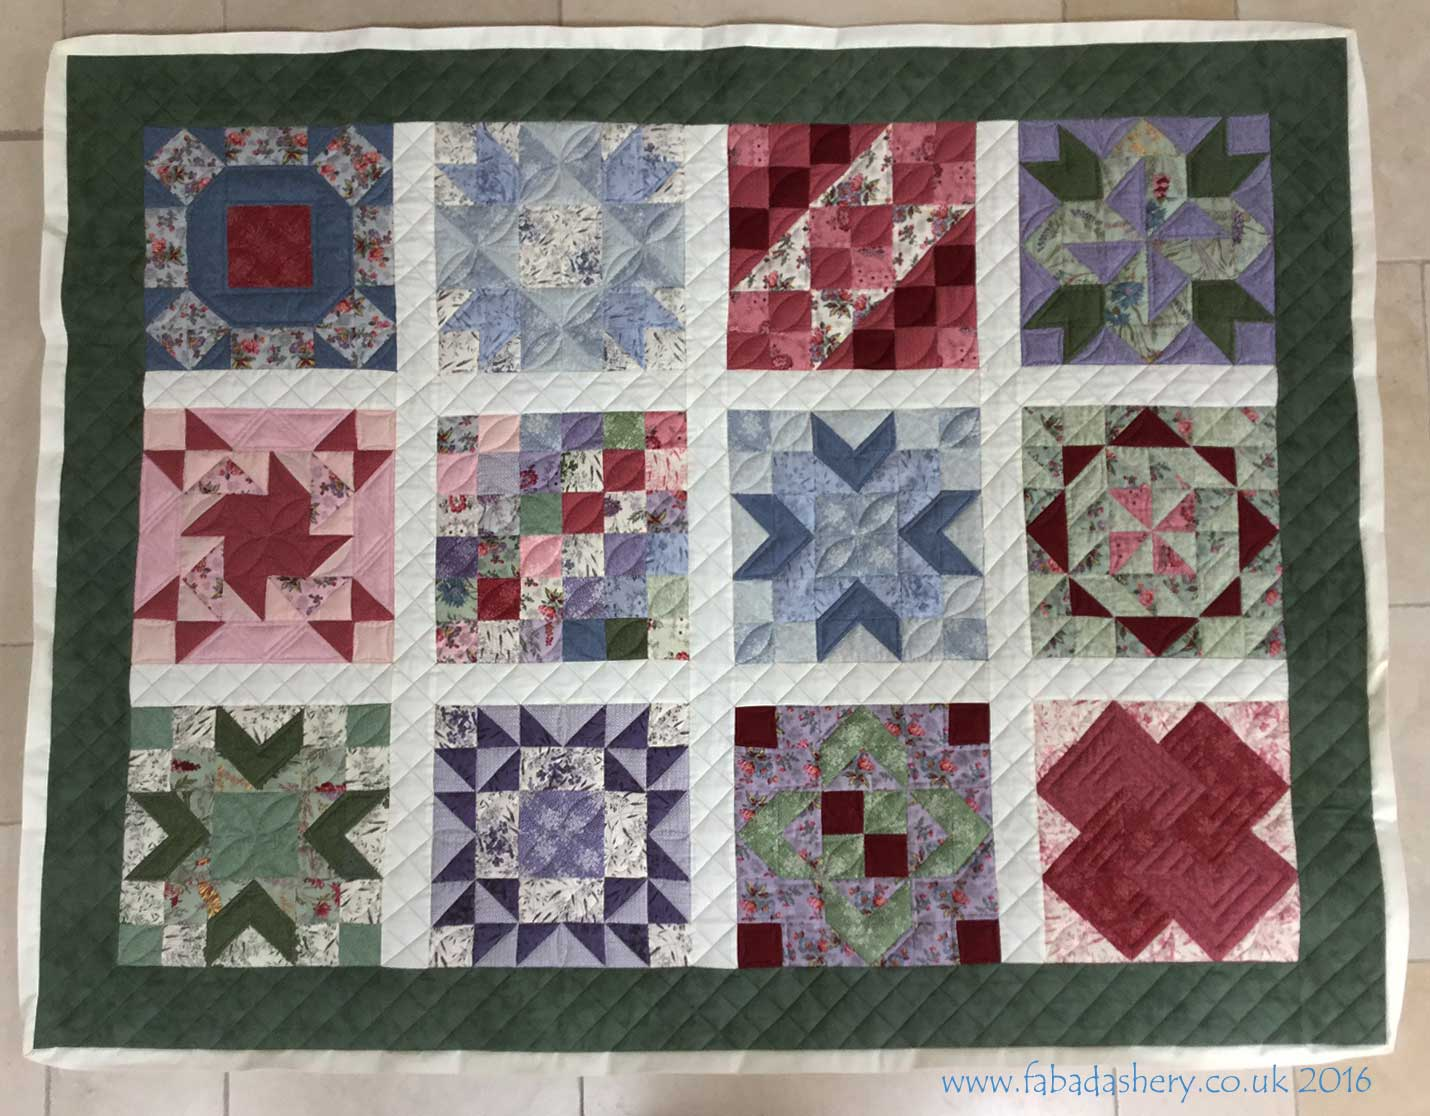 Fabadashery Longarm Quilting: Jelly Roll Sampler Quilt - Long Arm ... : long arm quilting uk - Adamdwight.com